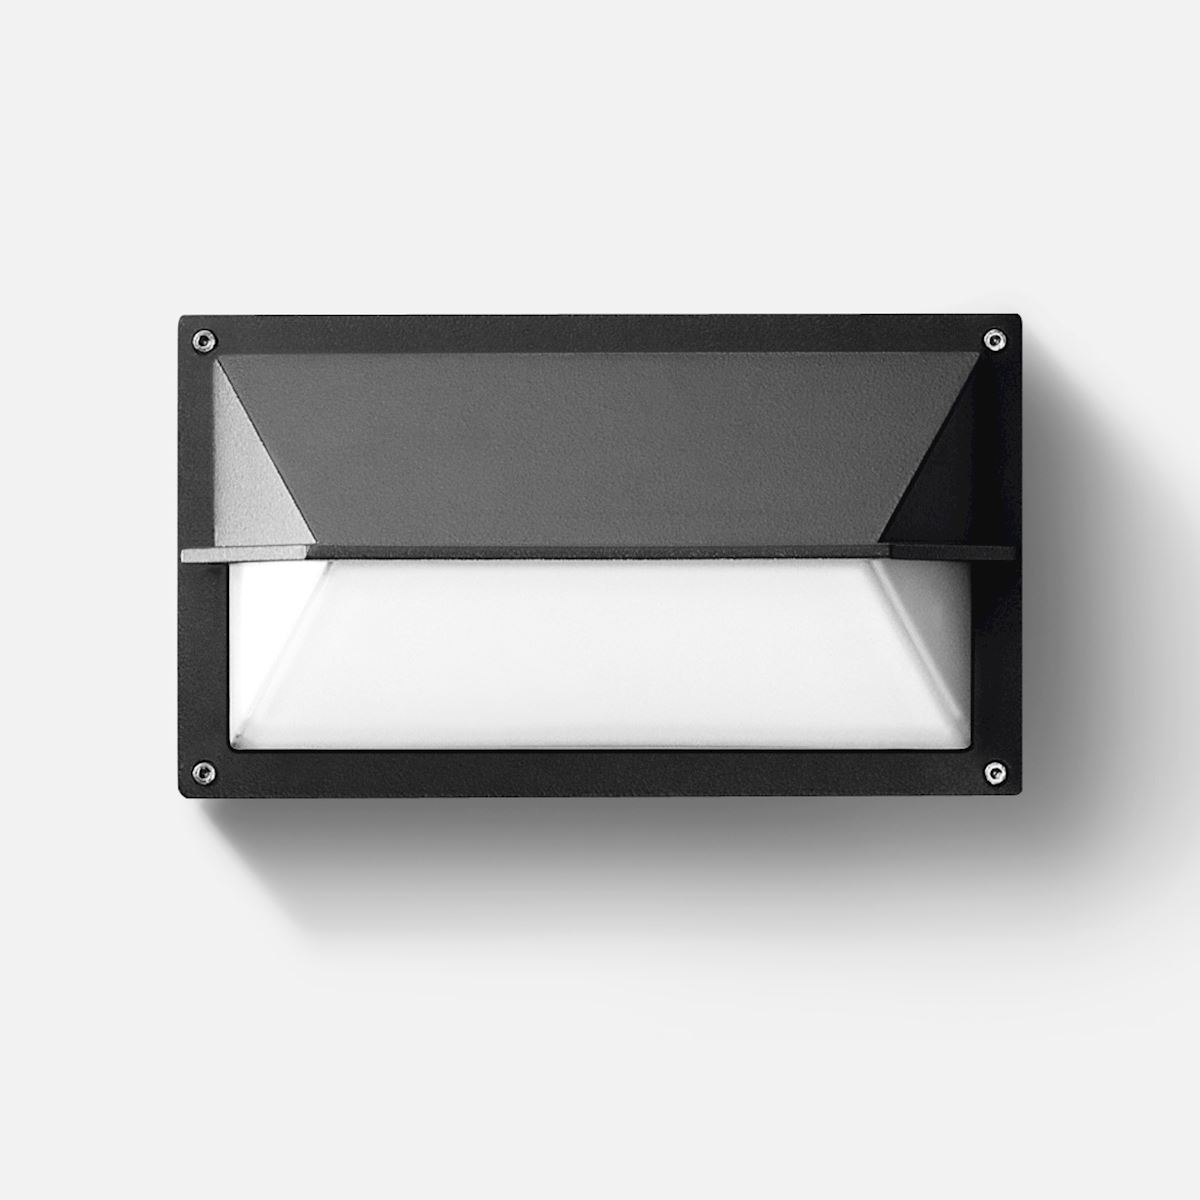 Impact-resistant wall luminaire